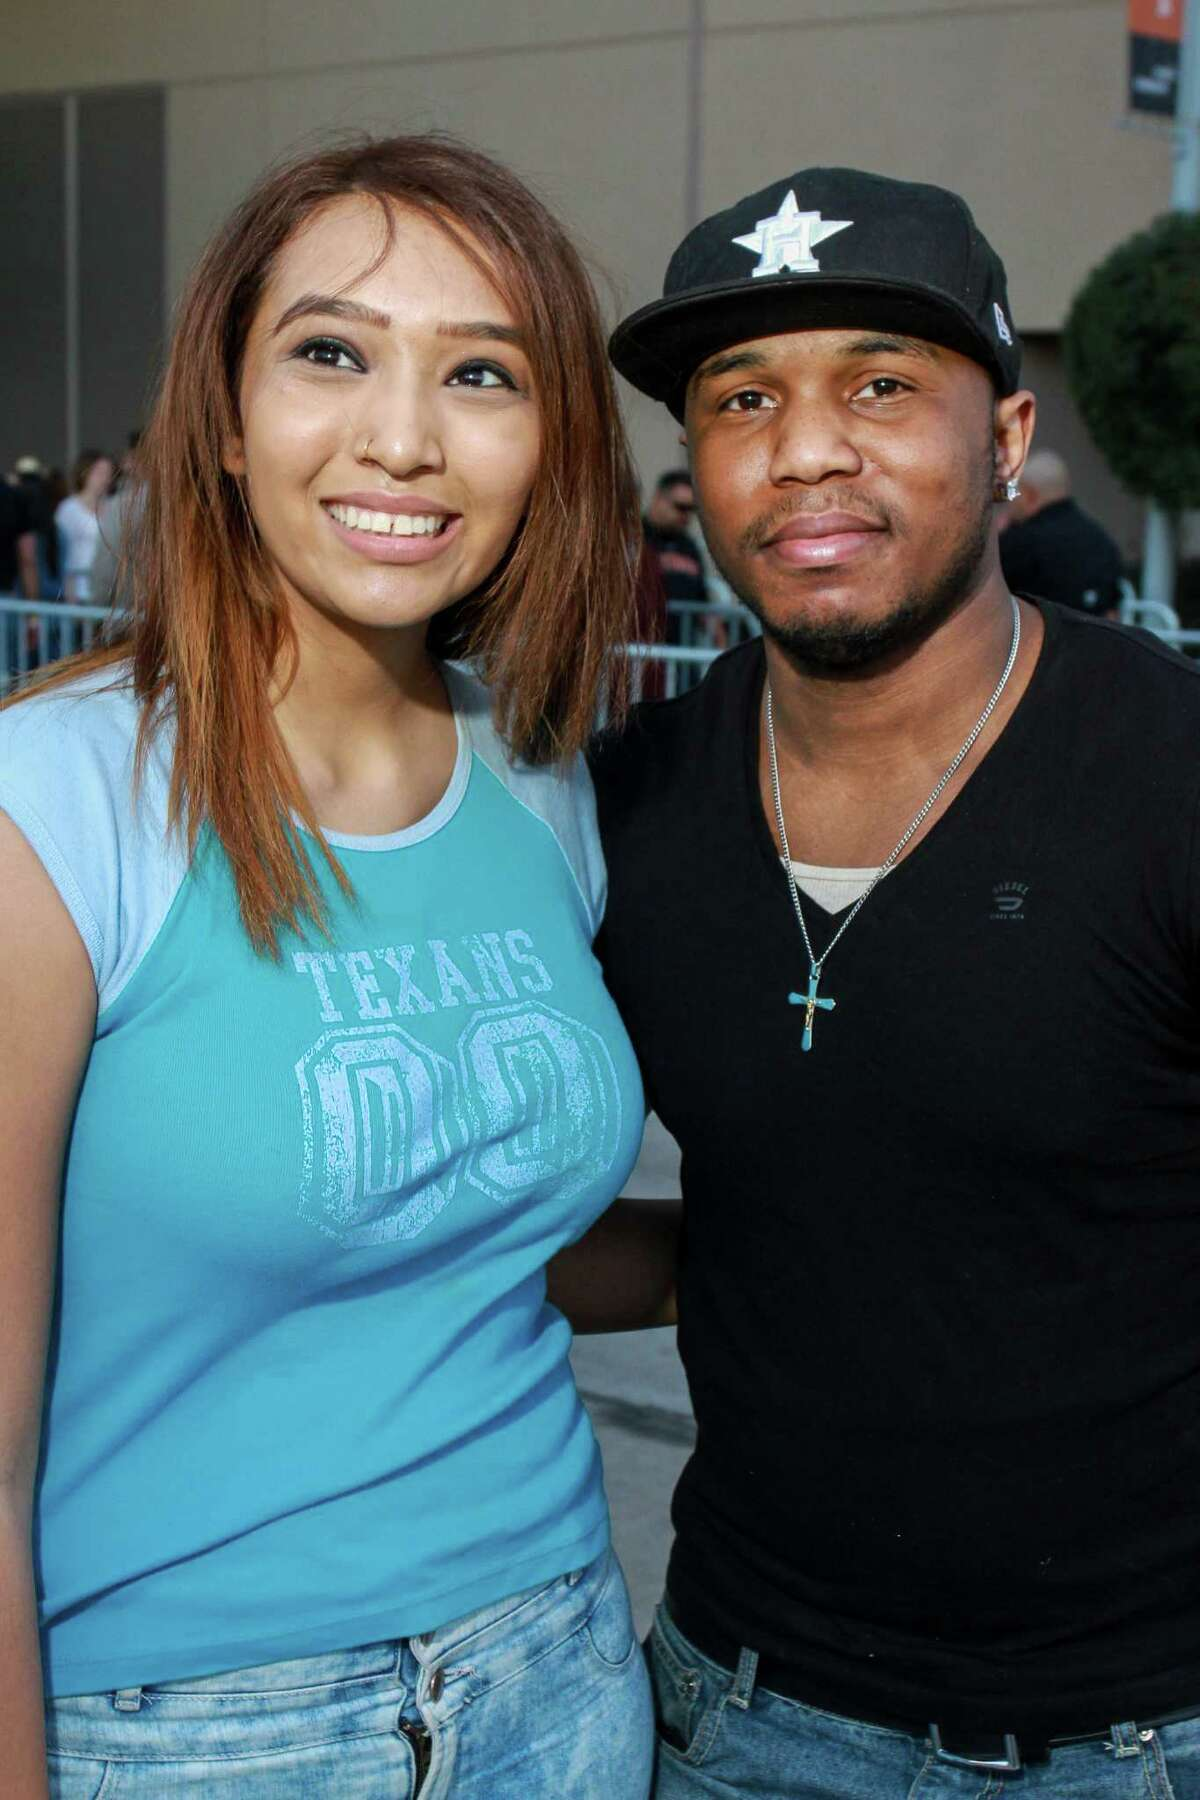 Jason Derulo fans at his RodeoHouston concert on Friday.